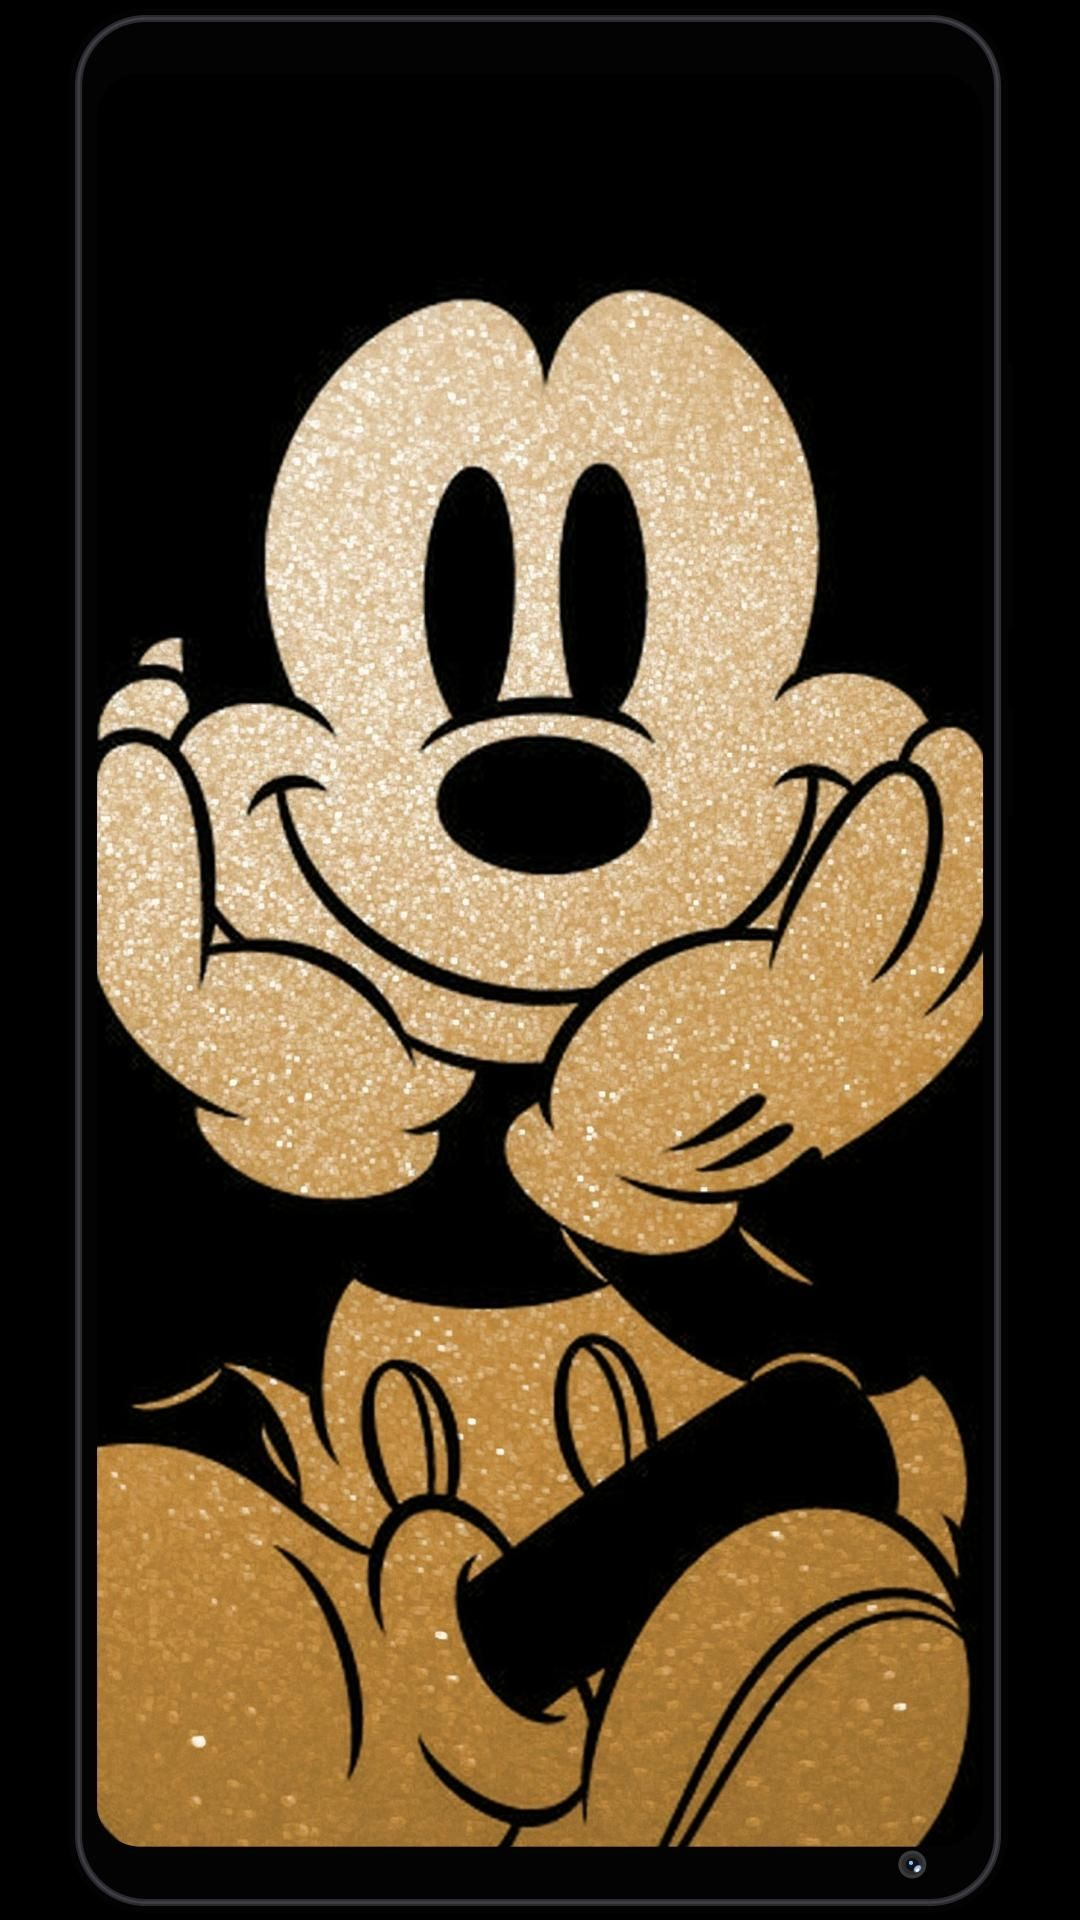 Cartoon Wallpapers 4k Hd For Android Apk Download Within The Most Amazing Cartoon Wall Mickey Mouse Wallpaper Mickey Mouse Wallpaper Iphone Mickey Mouse Images